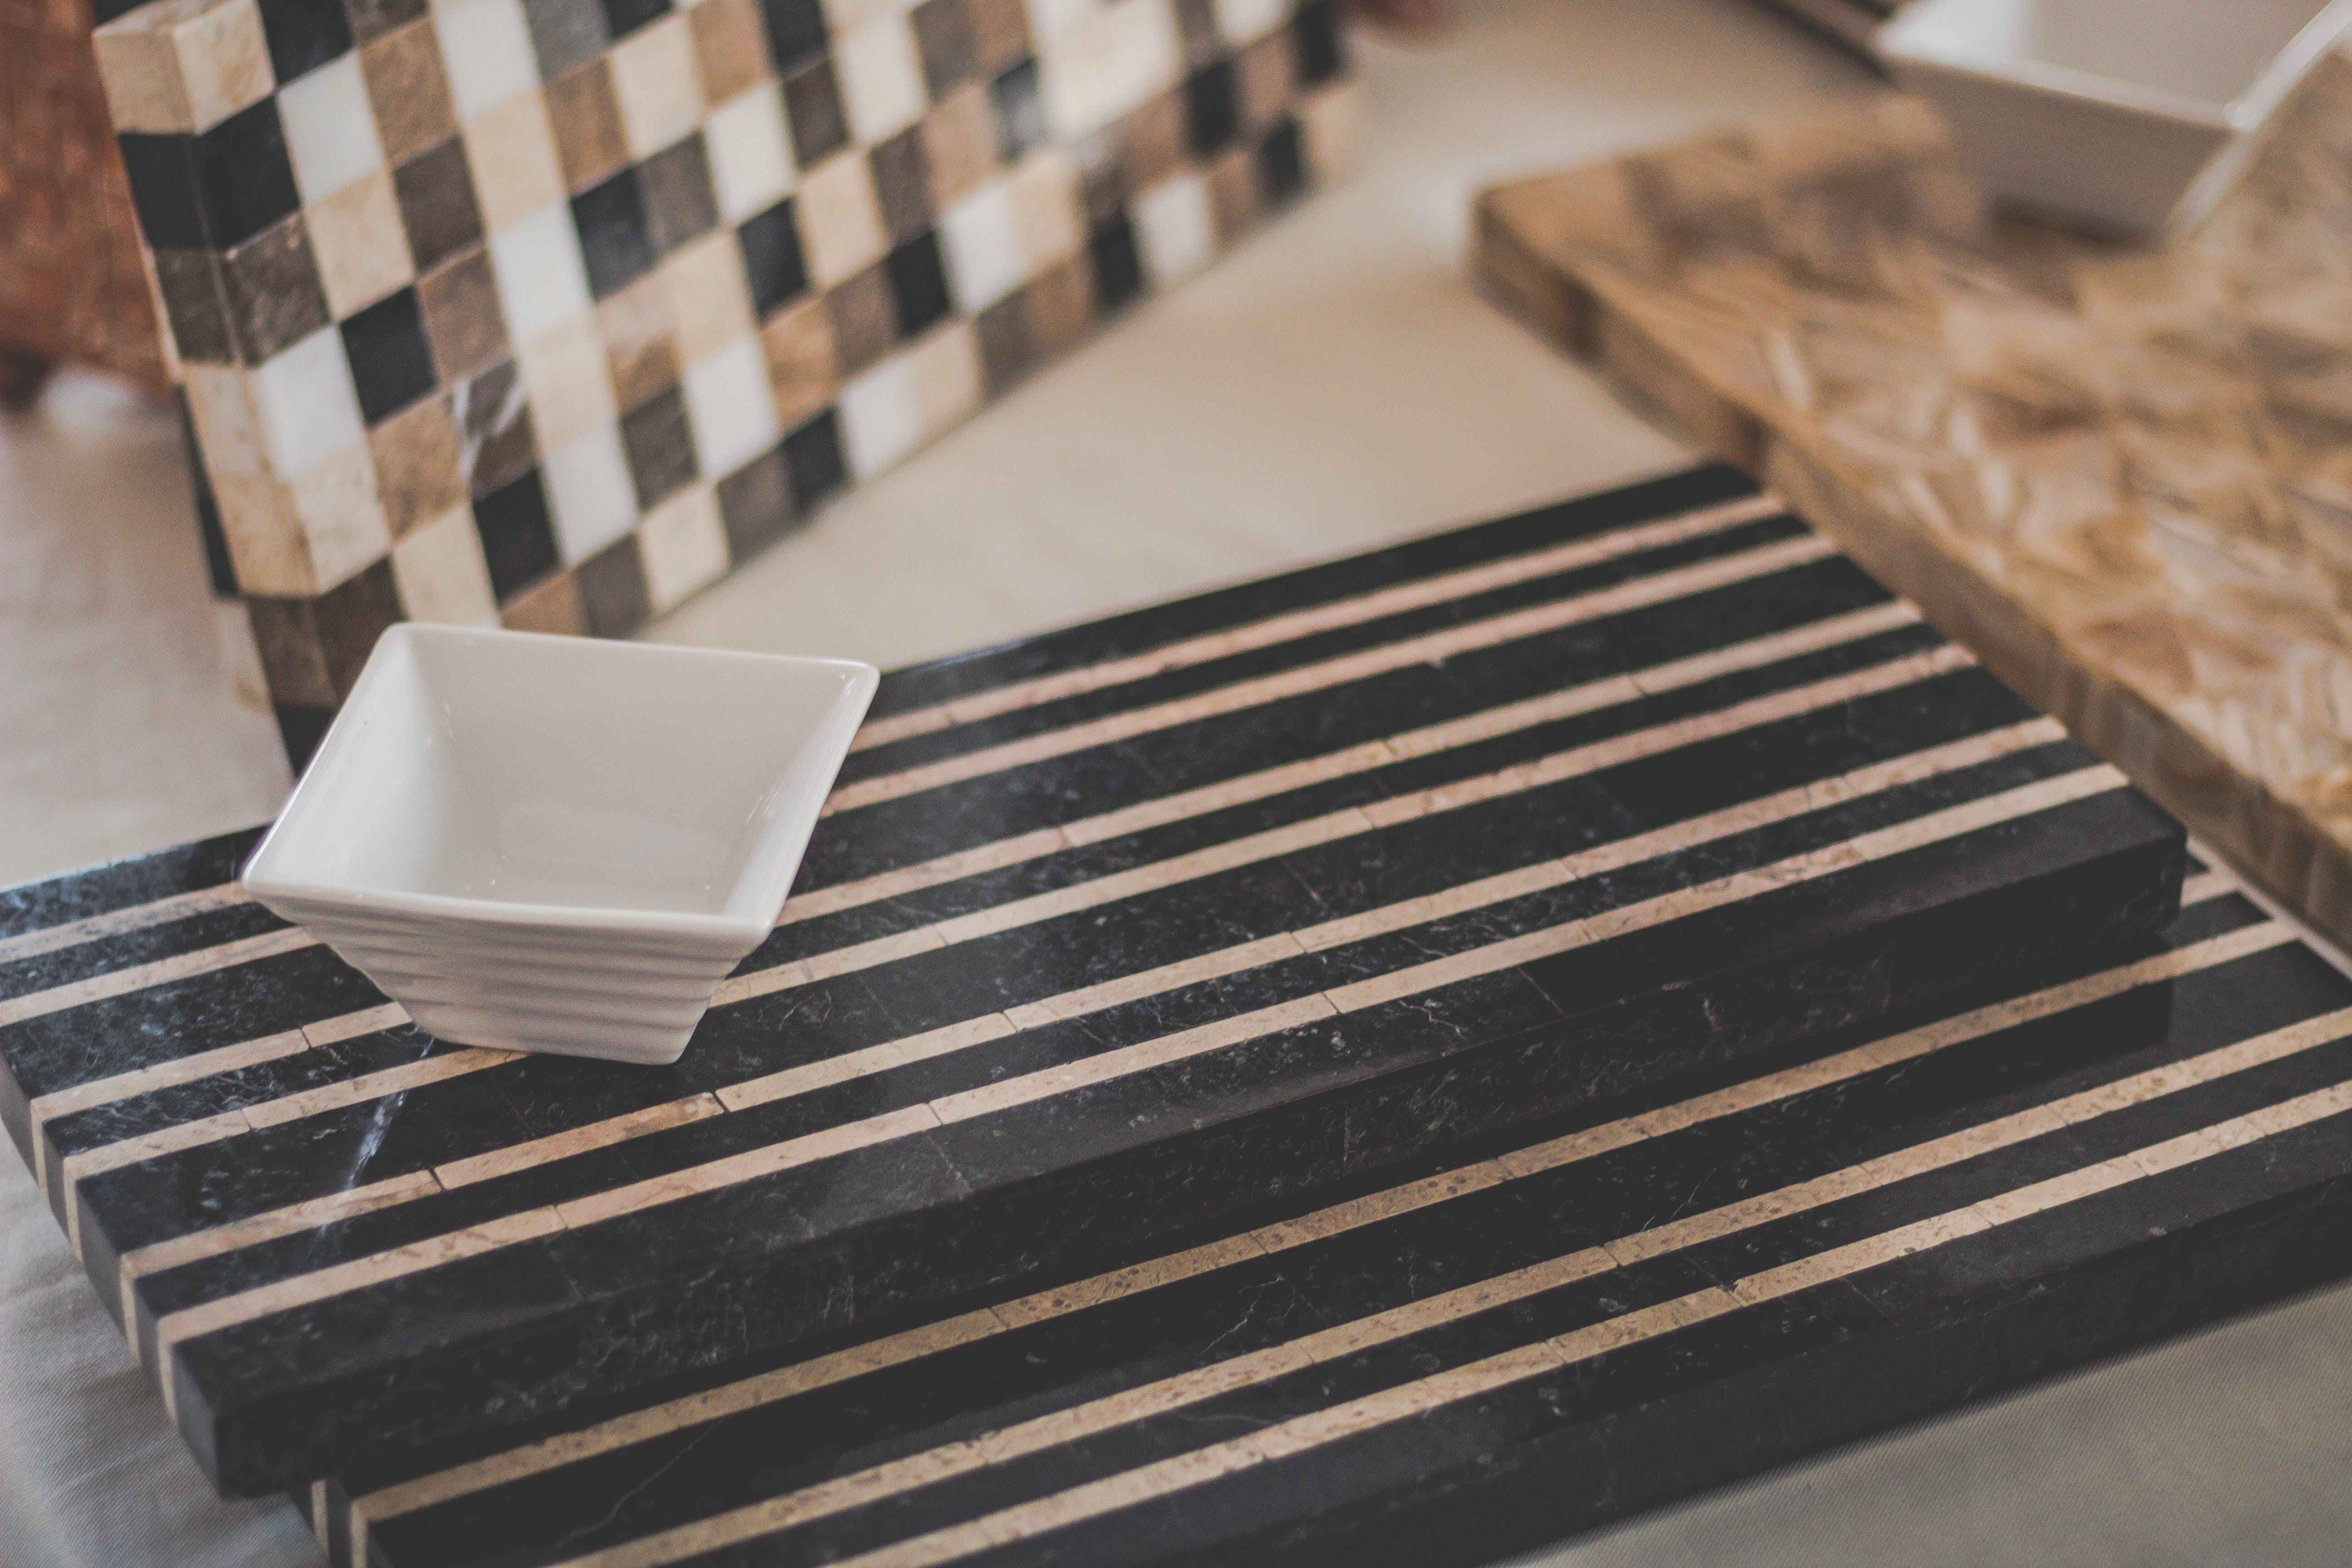 Square White Bowl and Black Wooden Surface